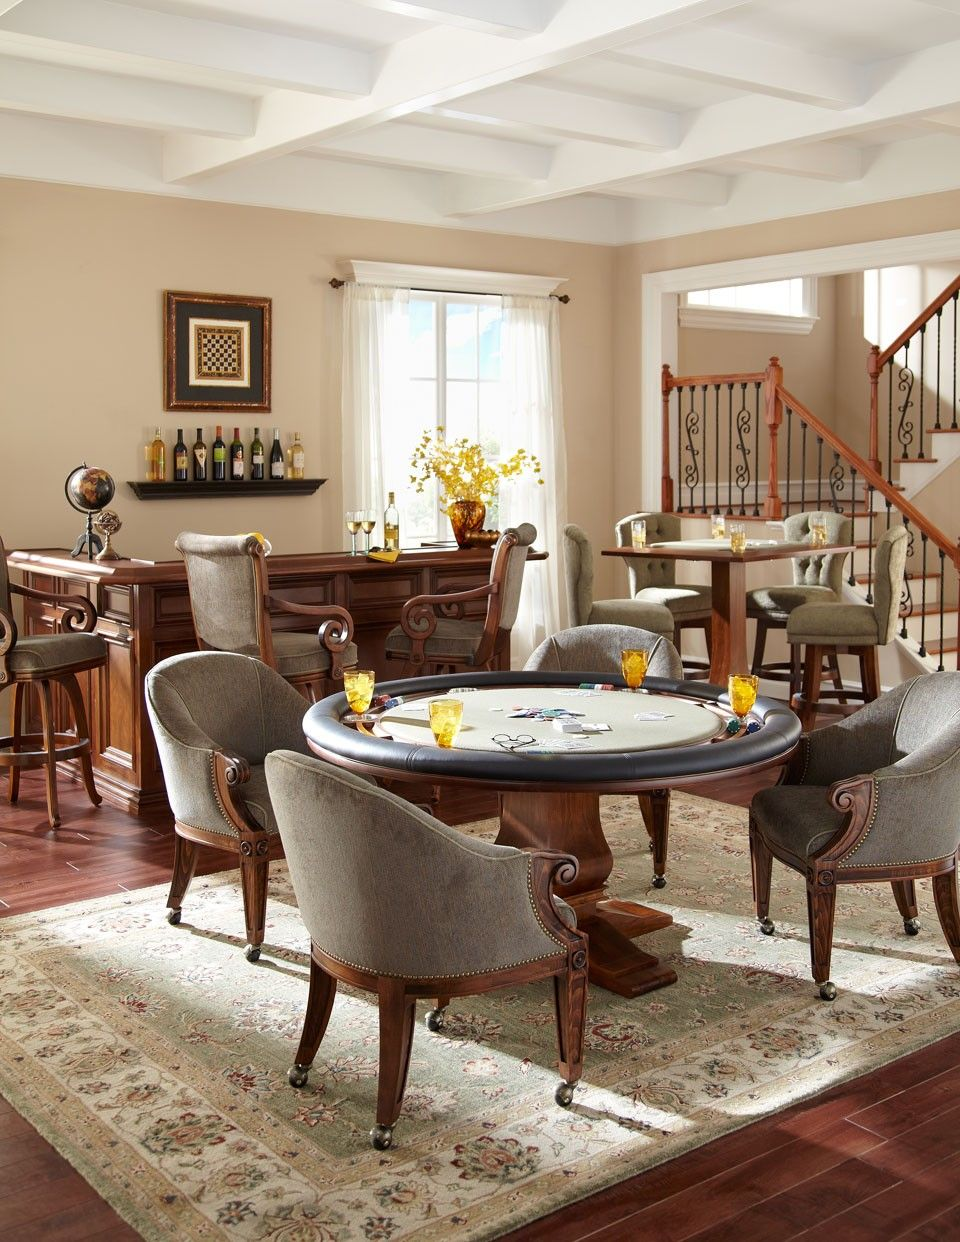 Image Result For Game Table In Living Room Card Table And Chairs Formal Living Rooms Living Room Table